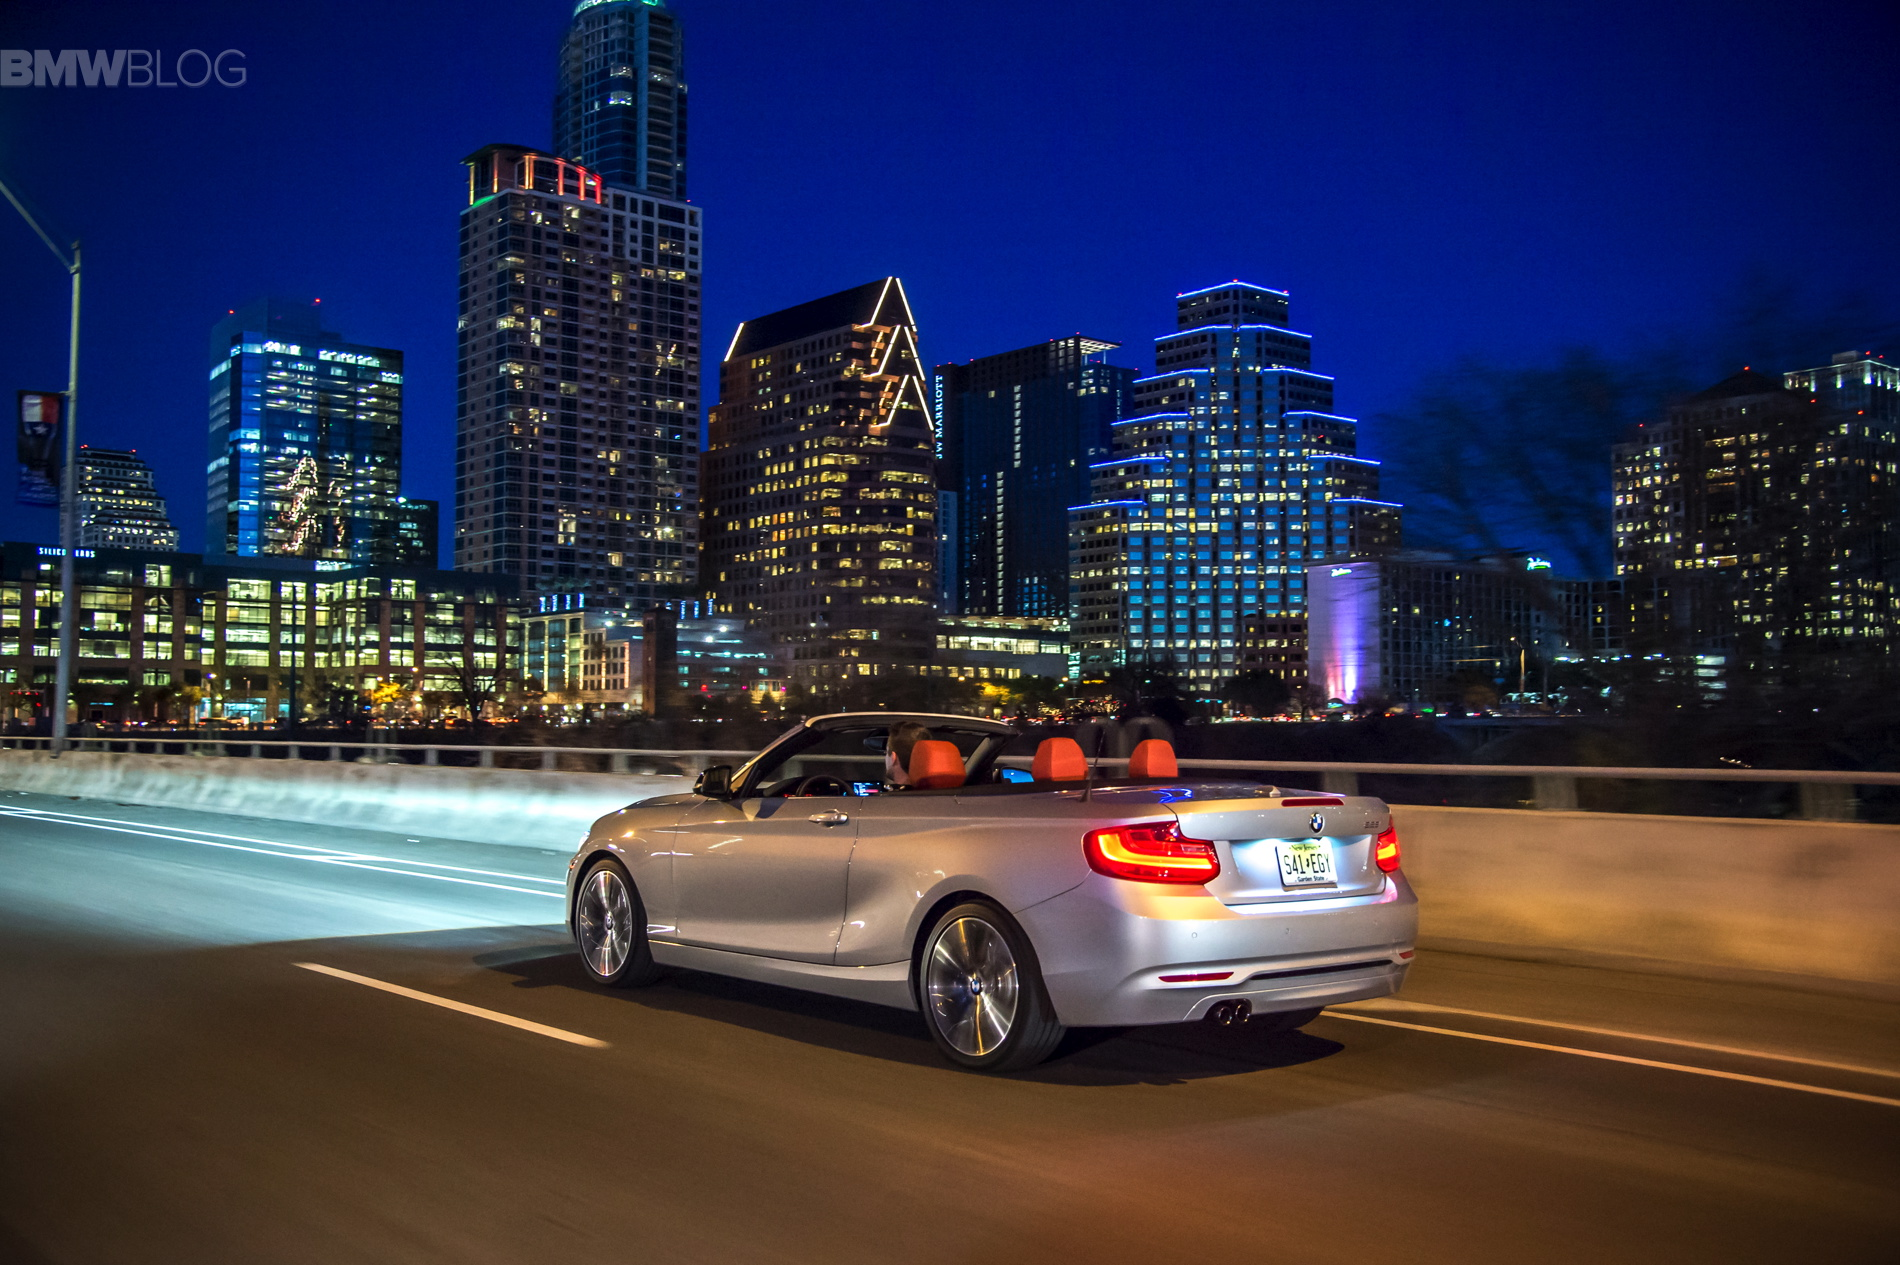 2015 bmw 2 series convertible images 041